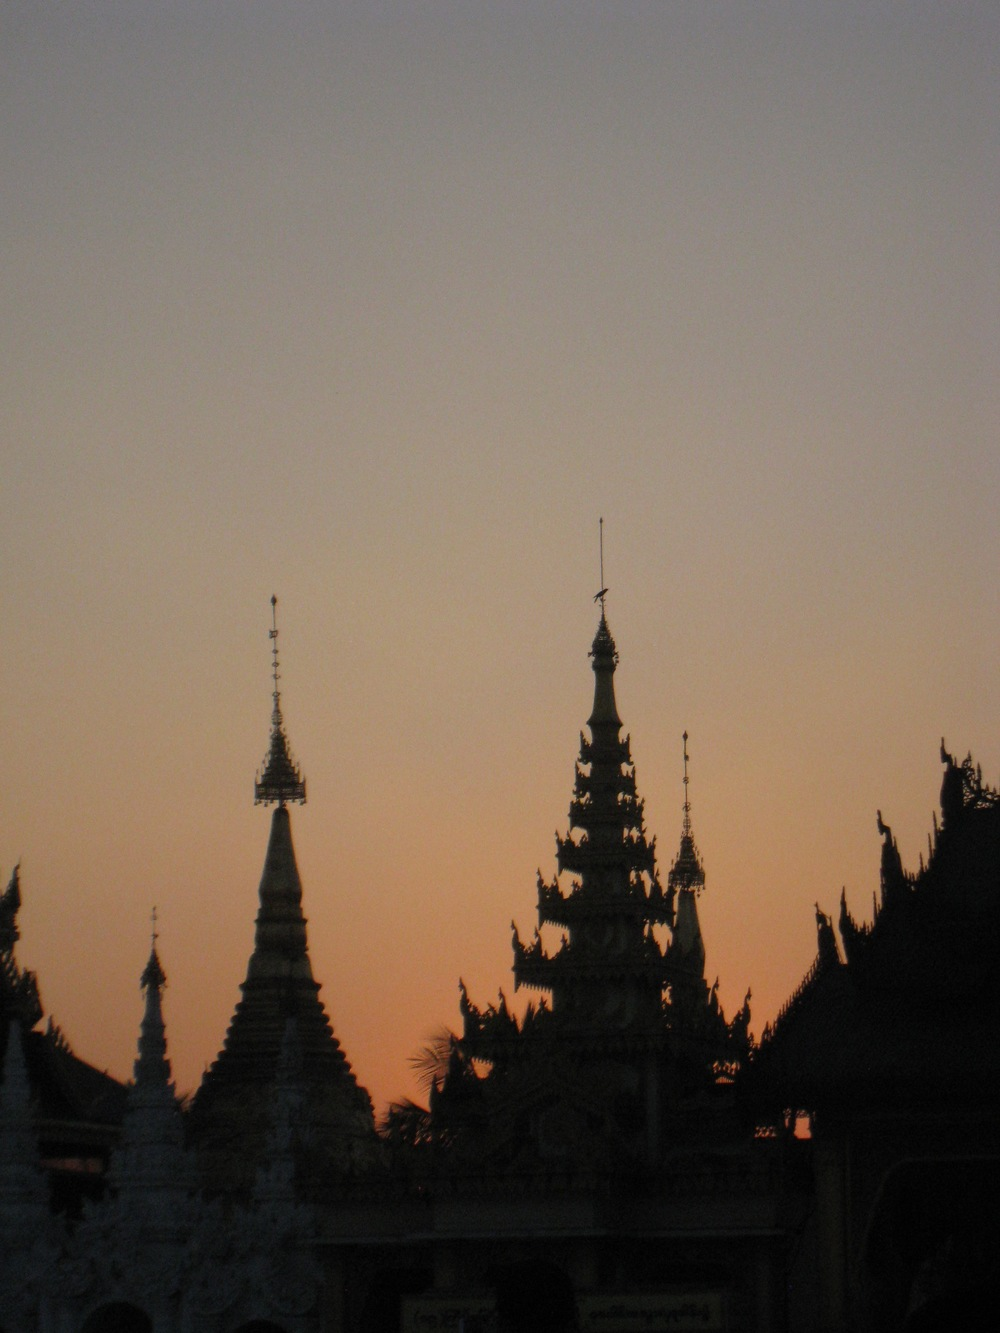 YANGON: THE GATEWAY TO MYANMAR